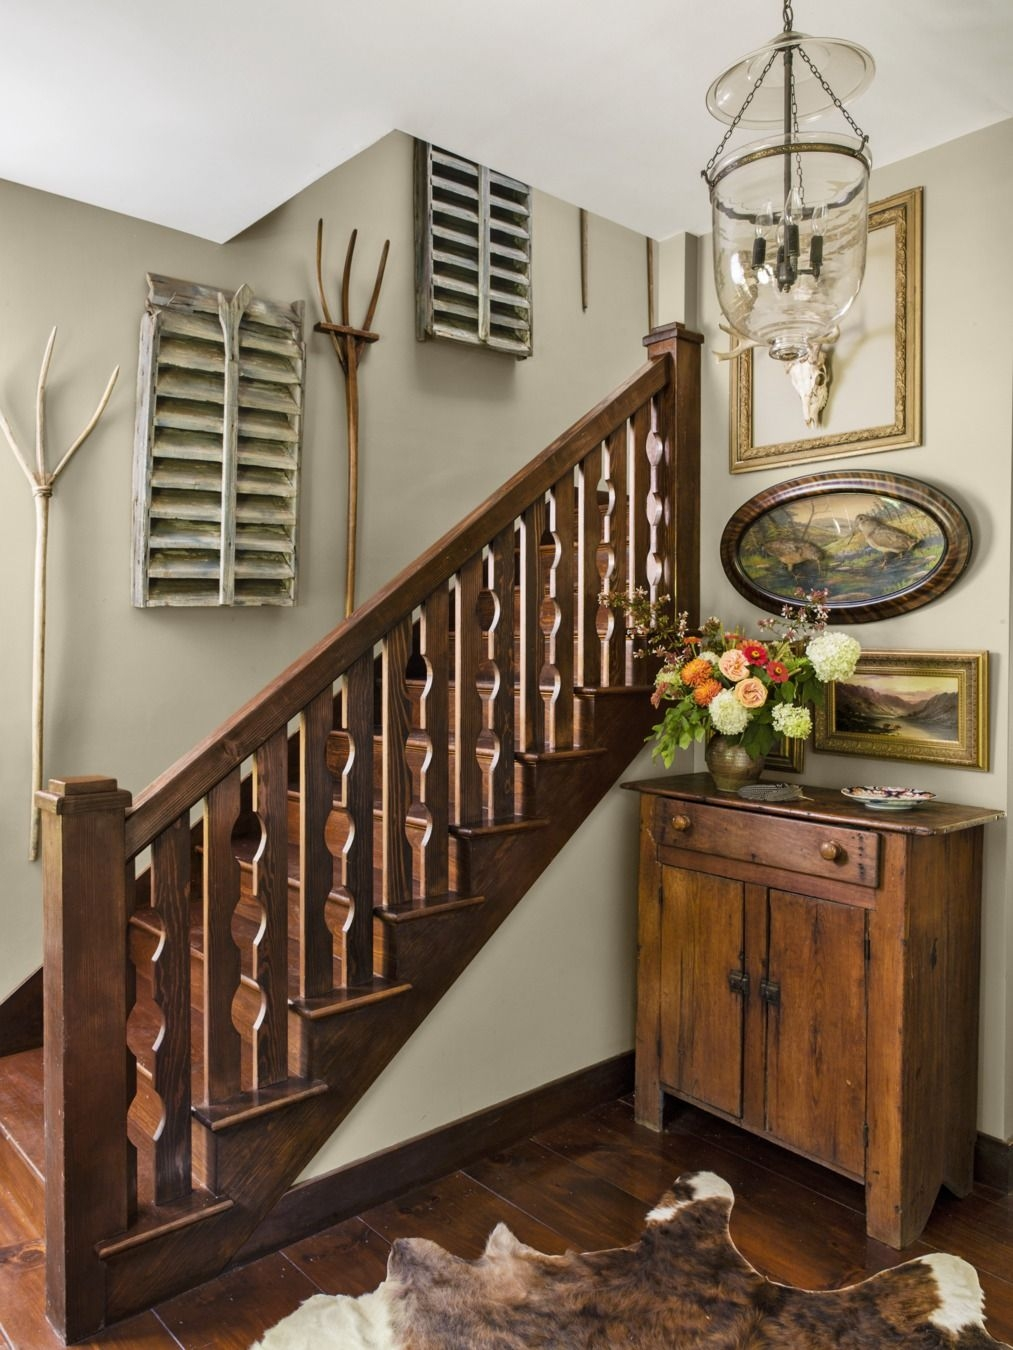 55 Best Staircase Ideas Top Ways To Decorate A Stairway   Top Of Stairs Railing   Redo   Loft   Beautiful Staircase   Solid Wood   Handrail